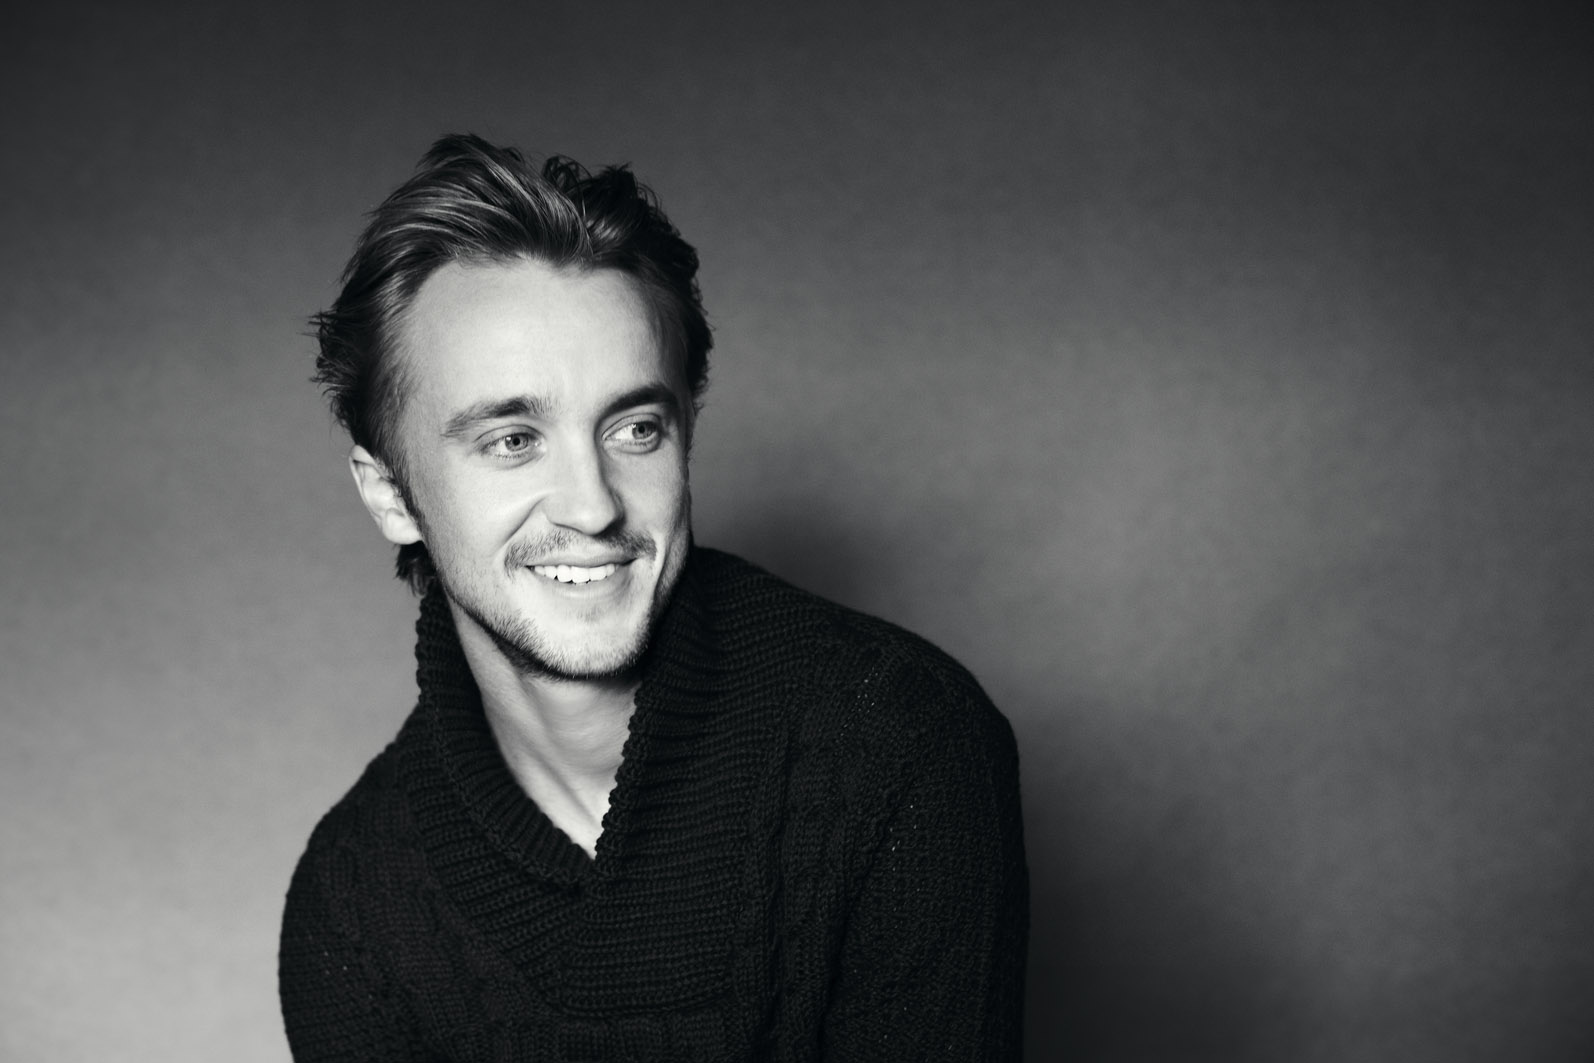 Asos-Magazine-Photoshoots-tom-felton-32814216-1594-1063